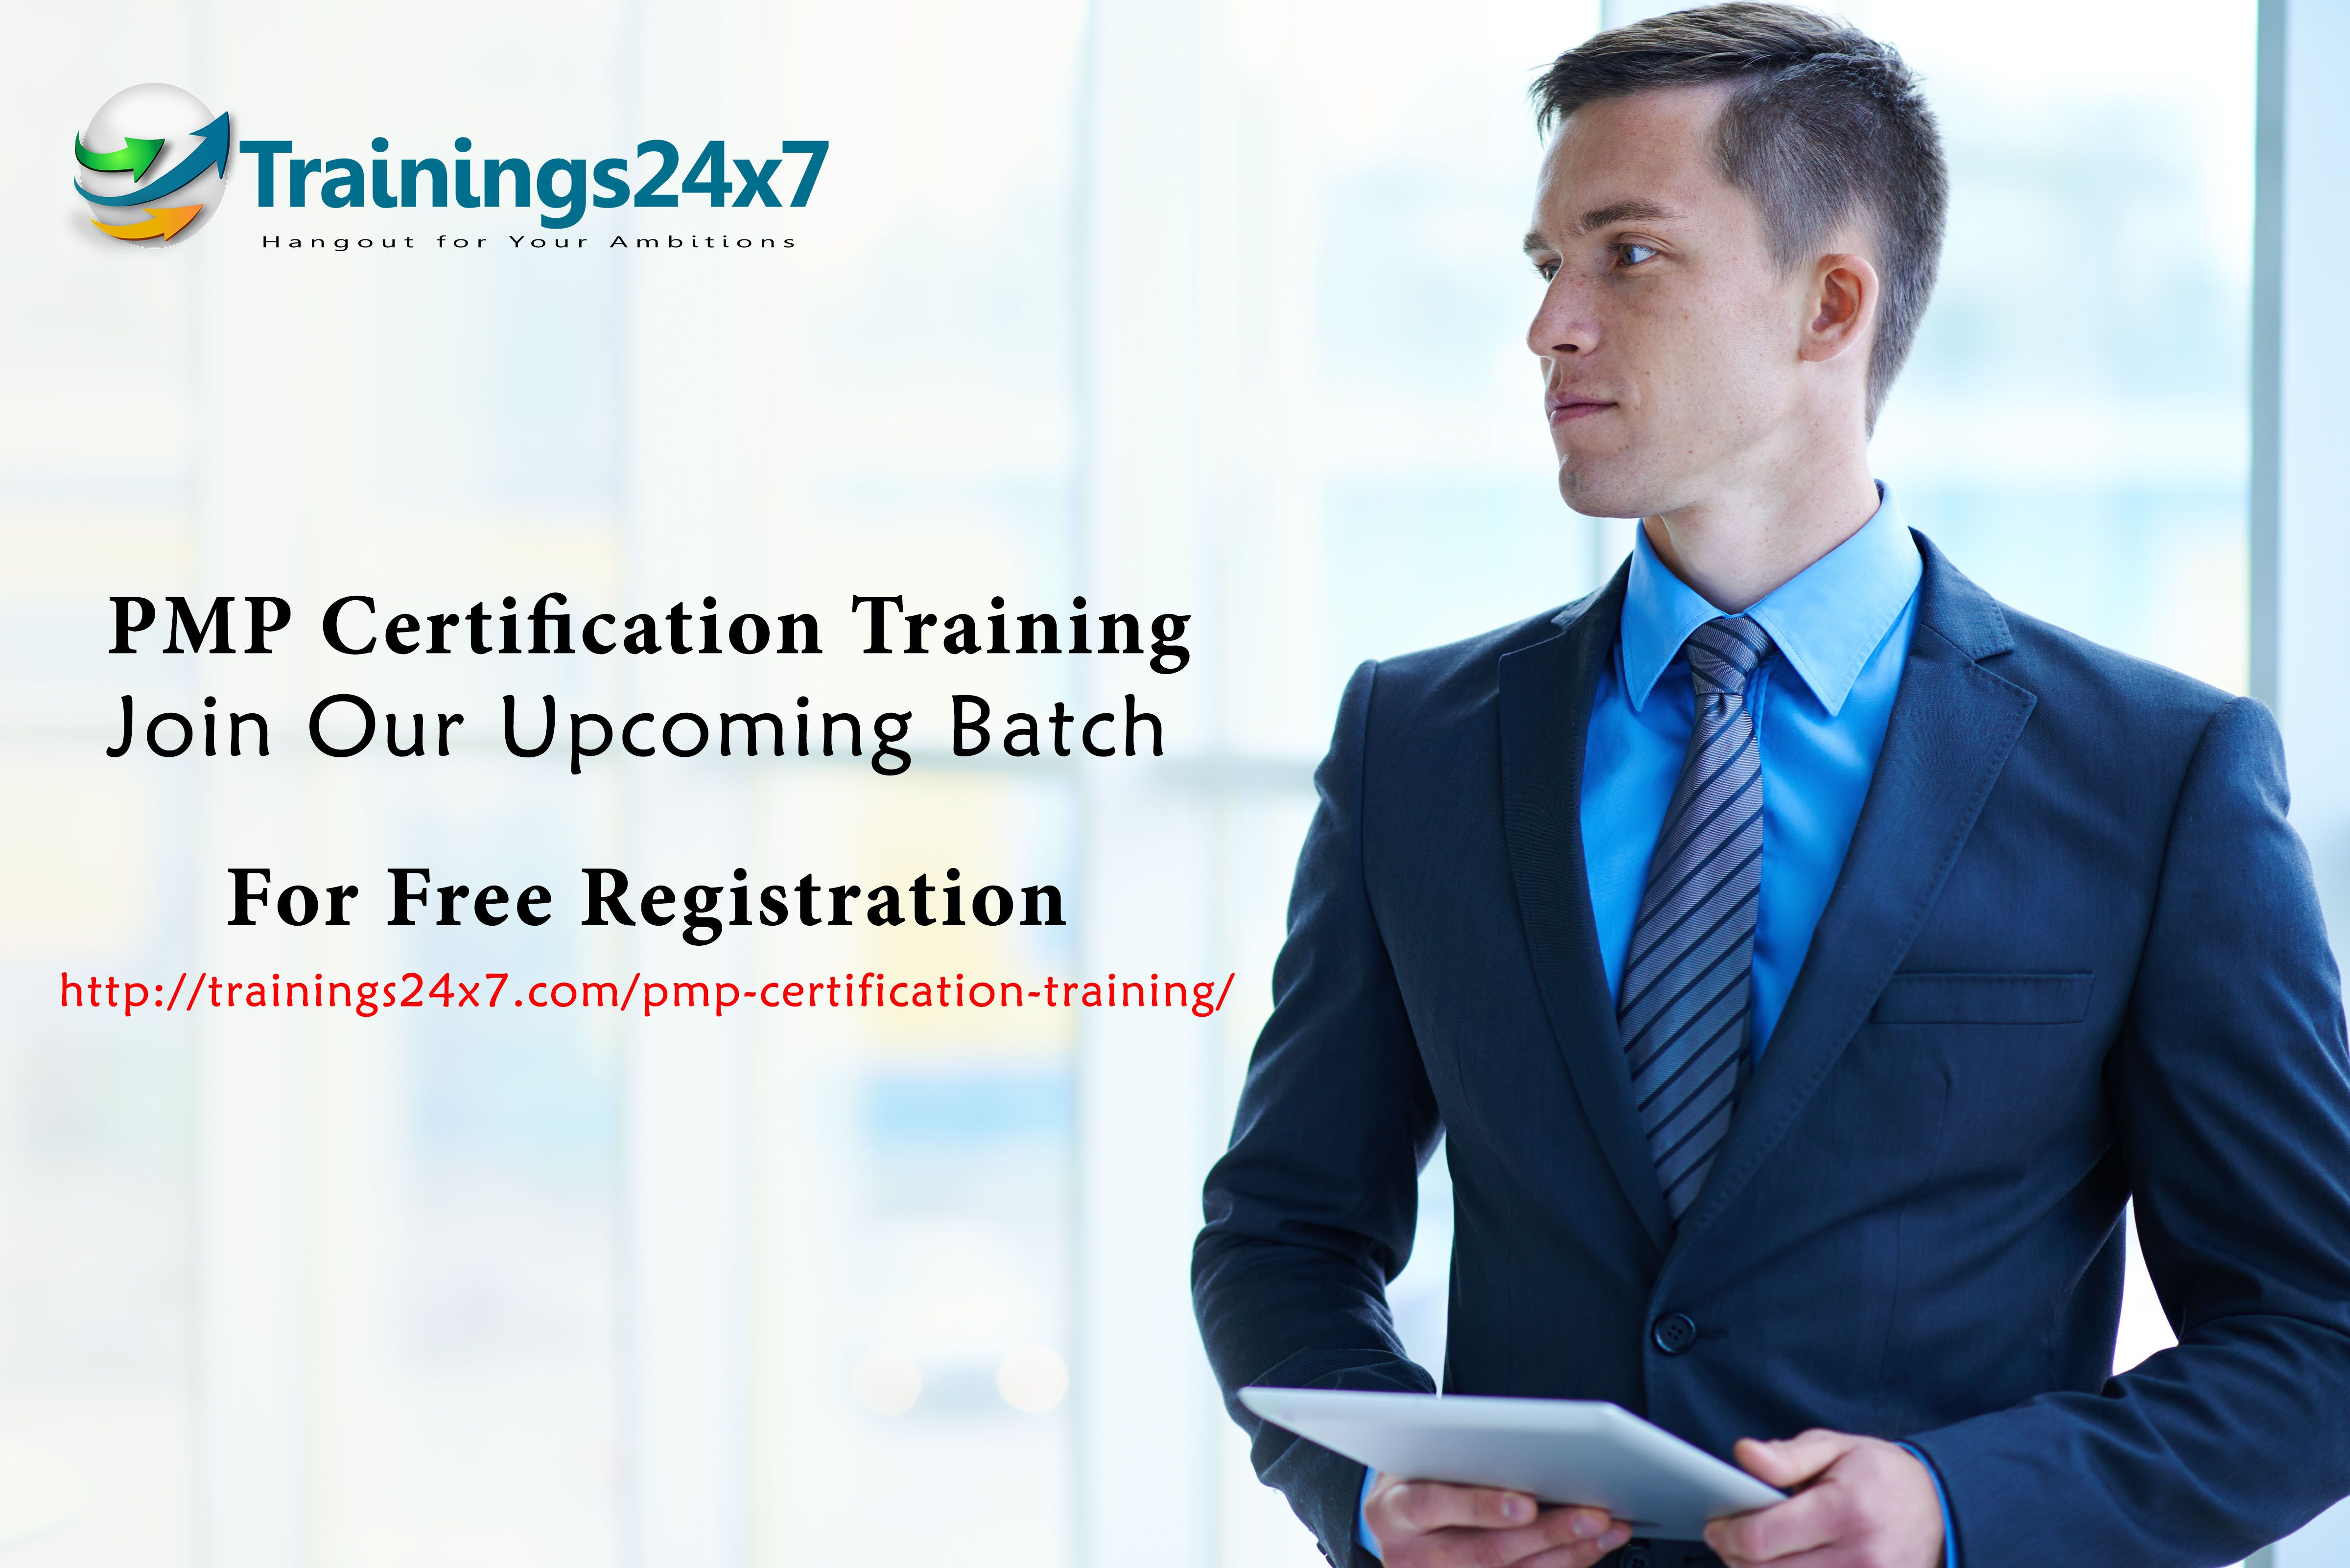 Pmp stands for project management professional certification exam project management pmp classroom training at 301 preet vihar new delhi offers 35 pdus certificate 6 simulations mobile apps pass guarantee 1betcityfo Images